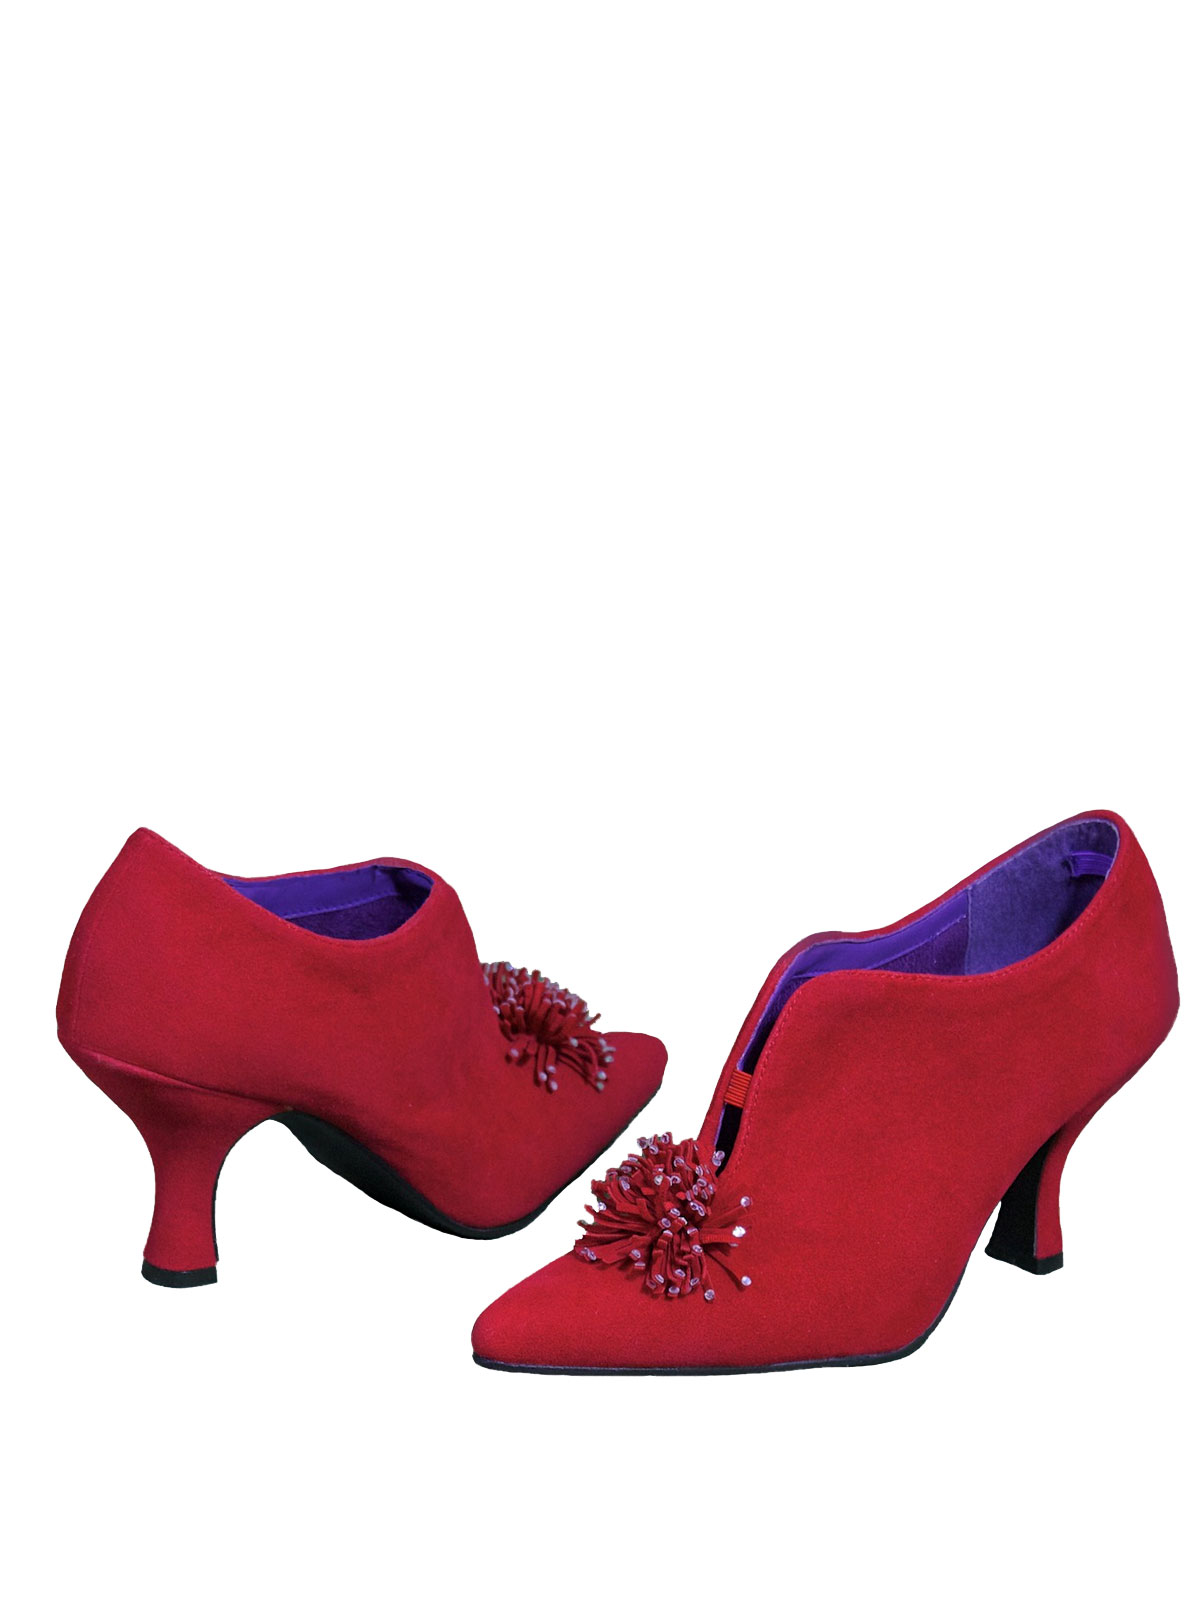 Pleaser Bordello Red Vintage Shoes French Heel Tout